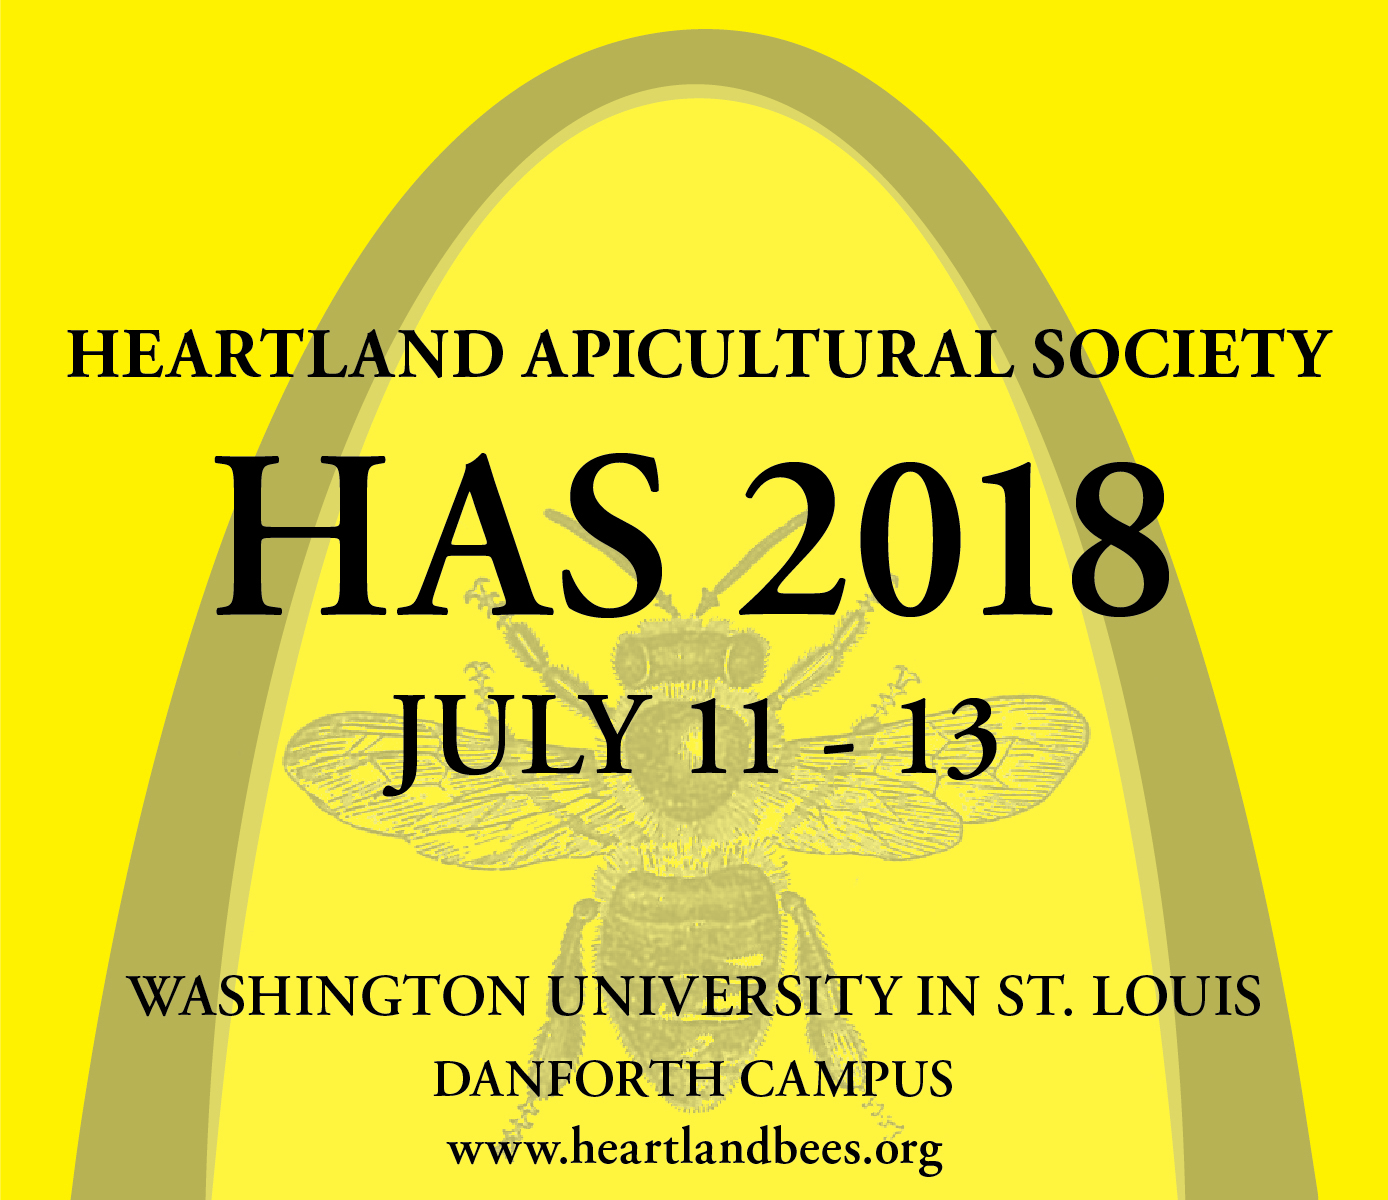 CATCH THE BUZZ – HAS at Washington University in St. Louis, on July 11-13.